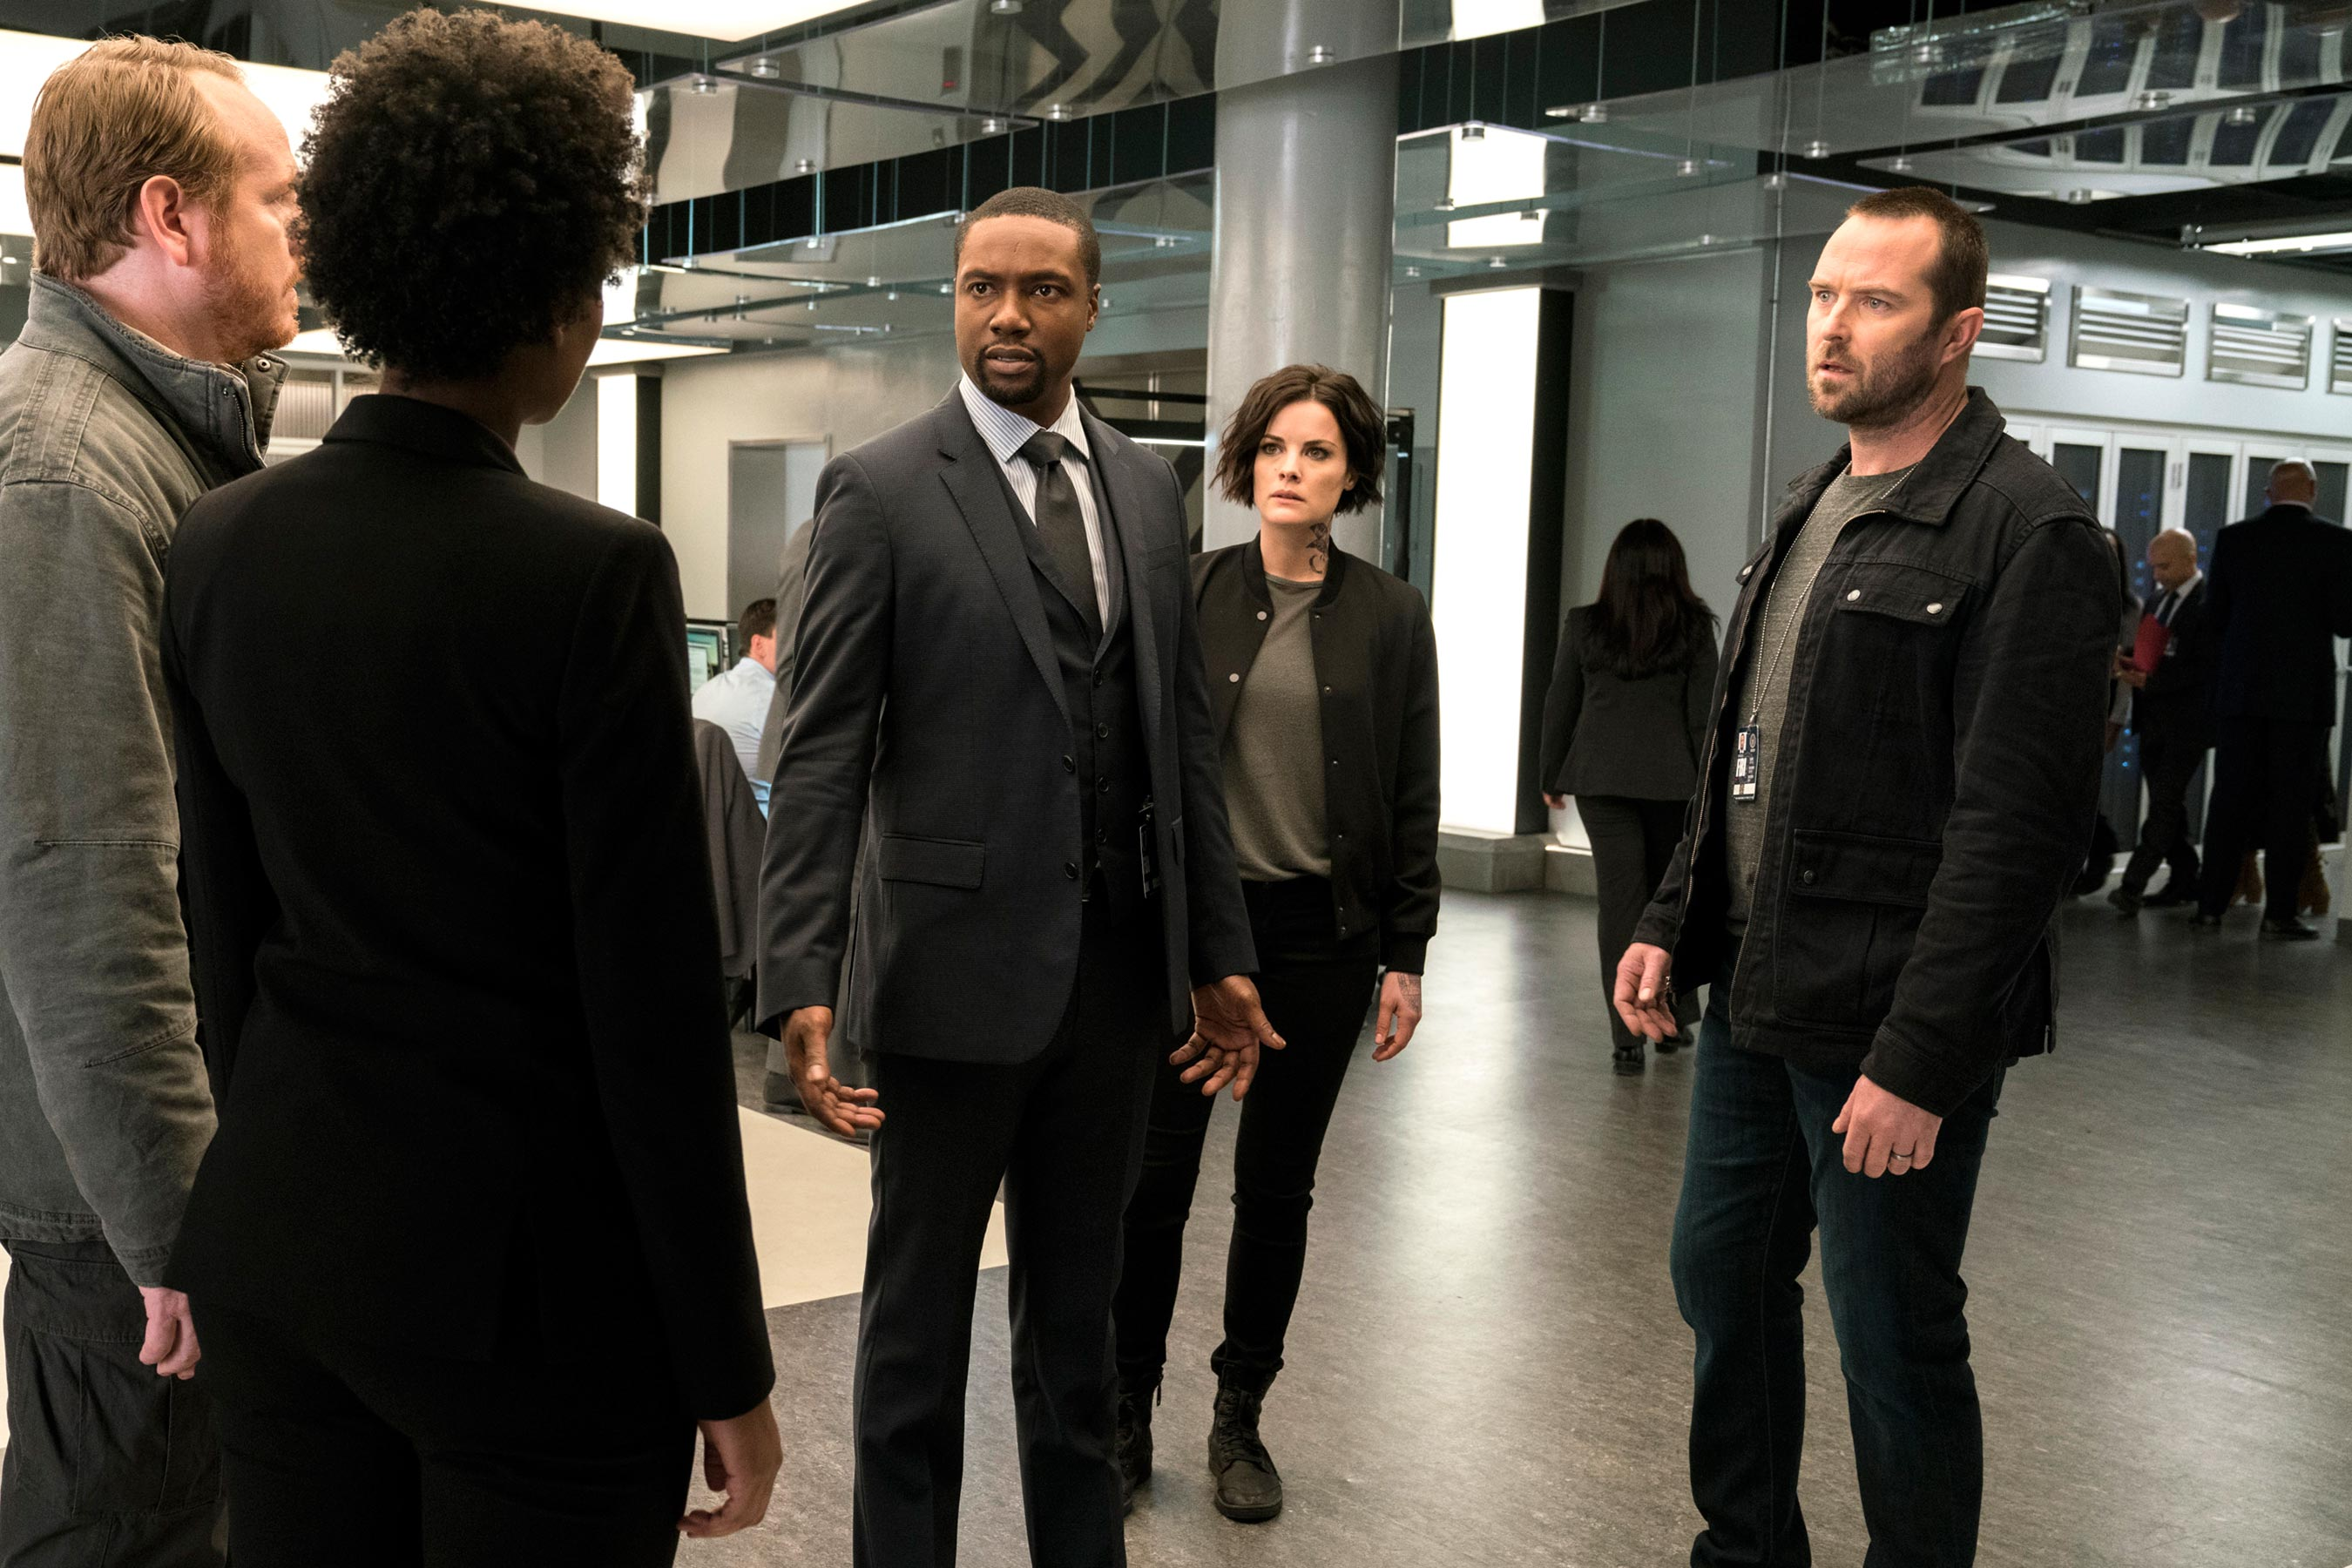 'Blindspot': Who's put a hit out on the team?